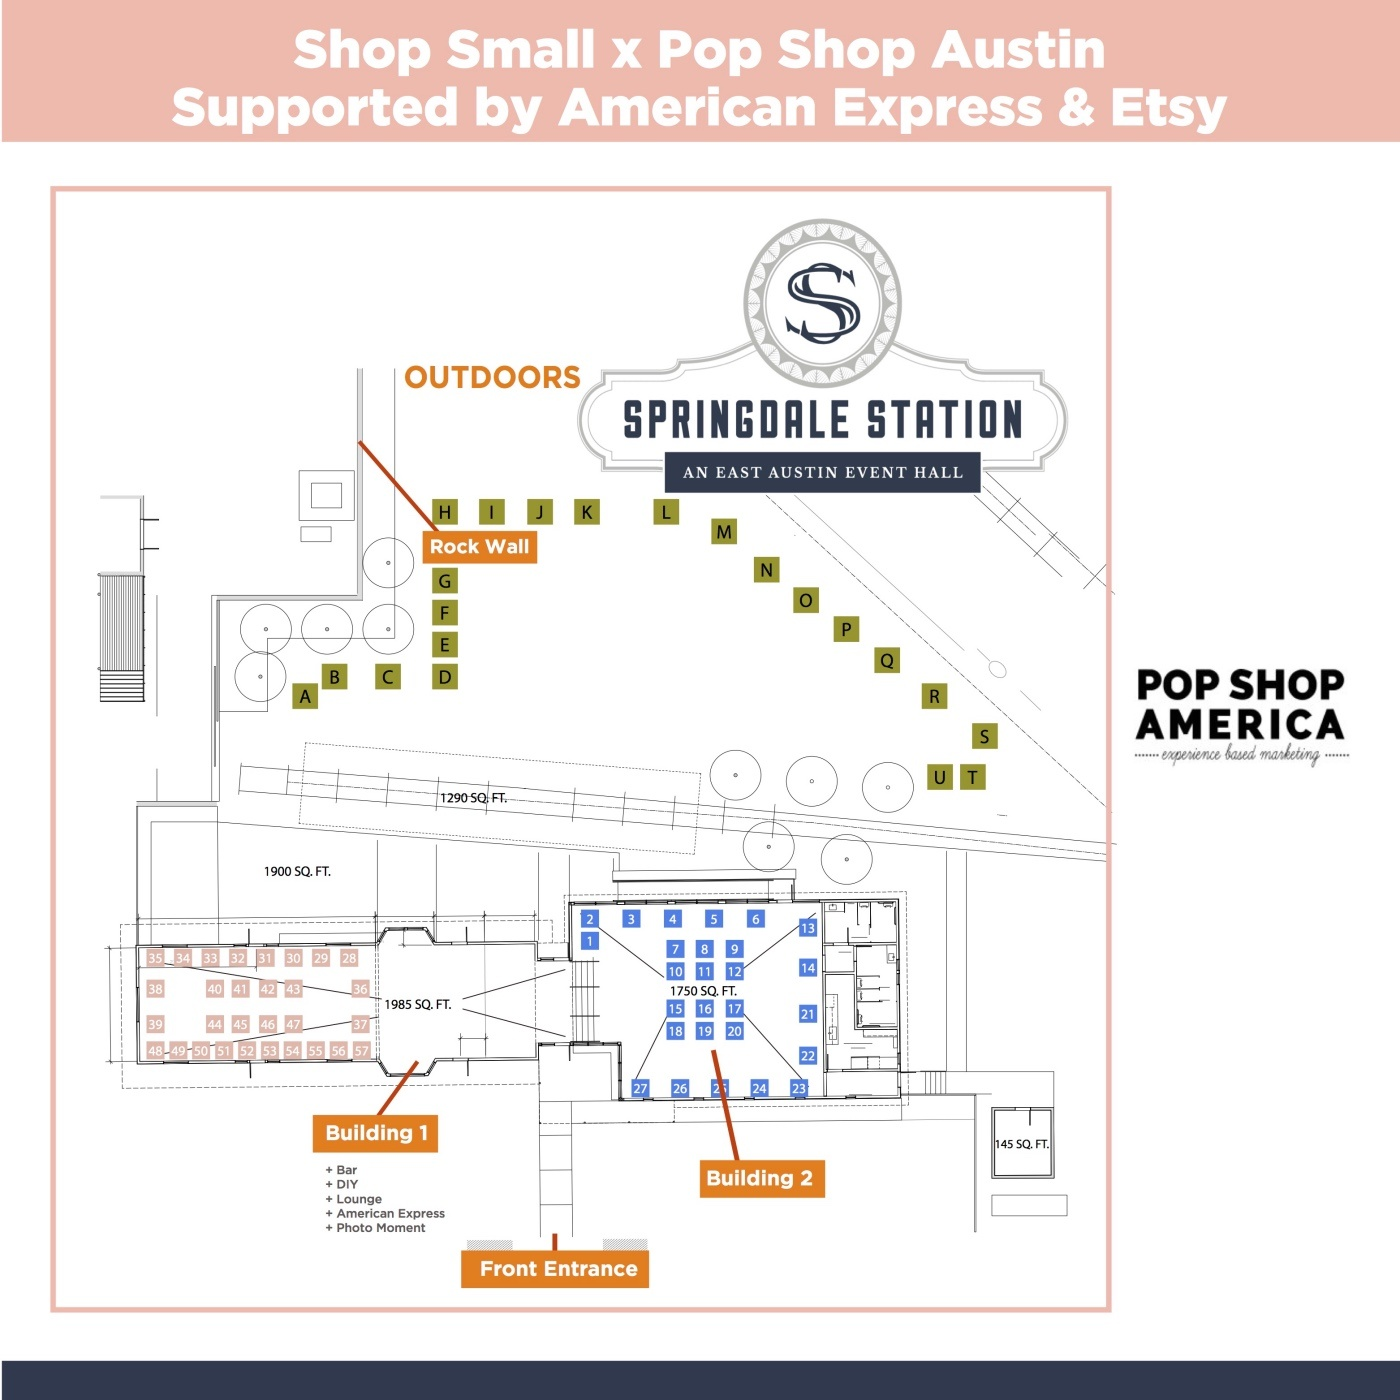 Springdale Station Pop Shop Austin Event Map_small